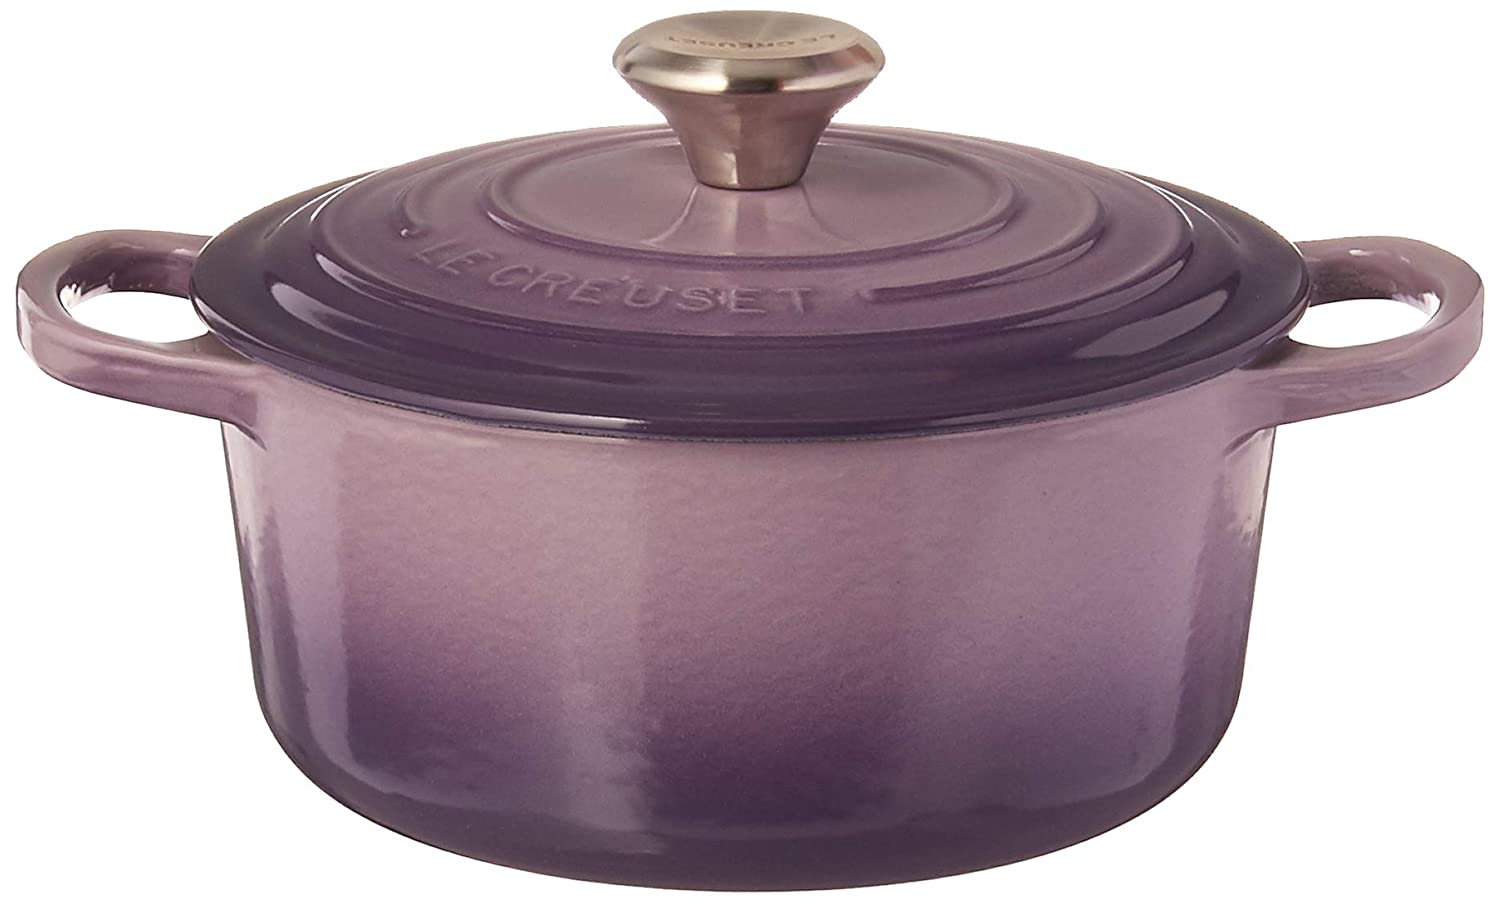 Le Creuset LS2501-18BPSS Signature Enameled Cast-Iron Round Dutch Oven, 2 quart, Provence